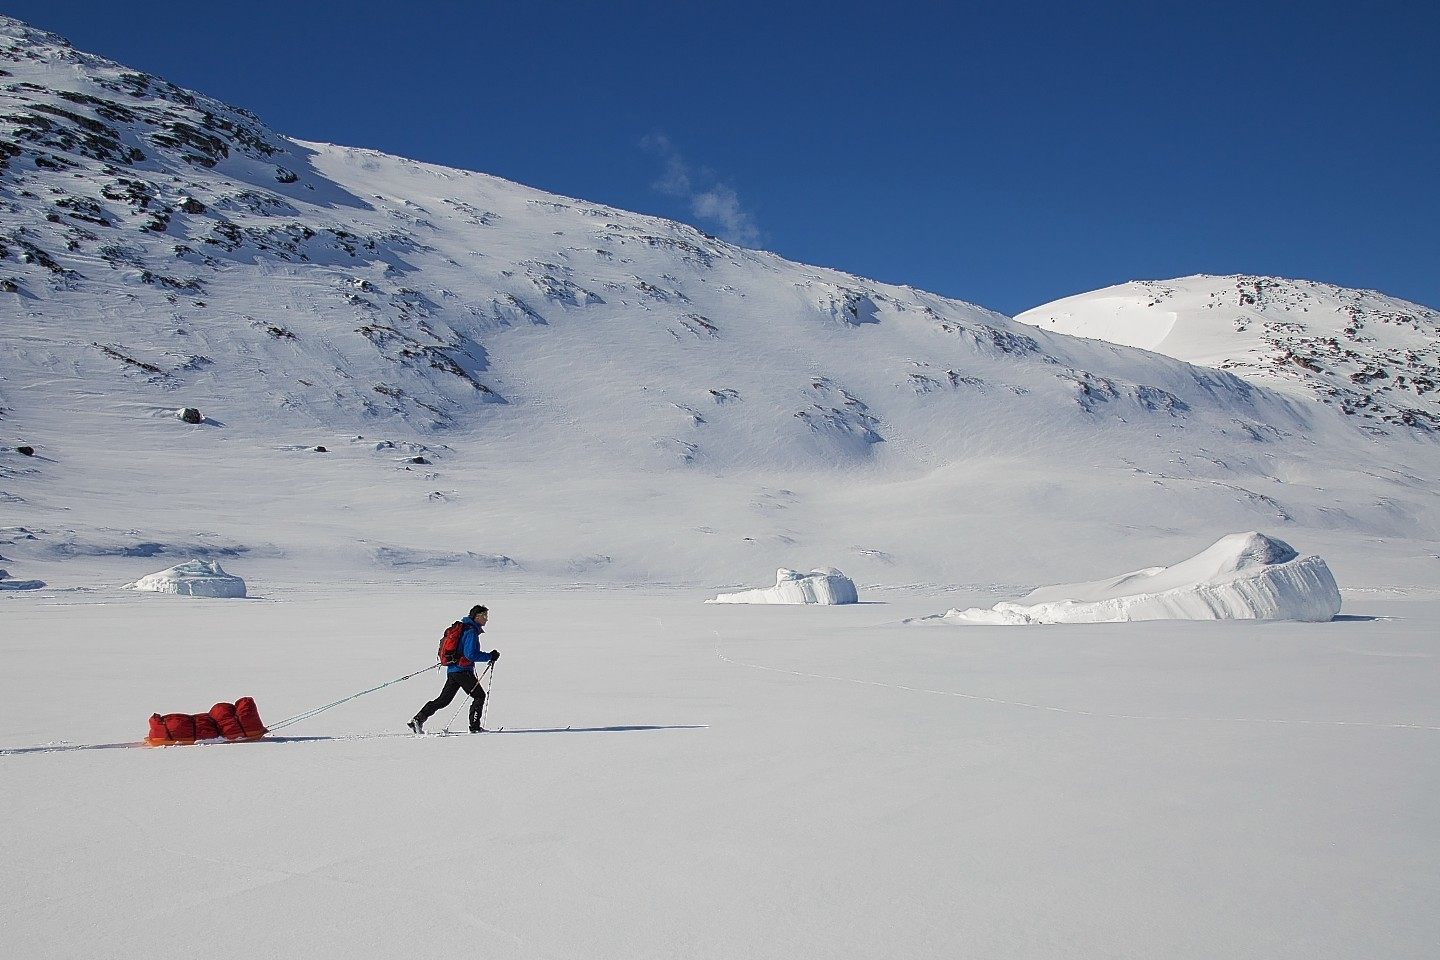 The 30-year-old training in Eastern Greenland earlier this year